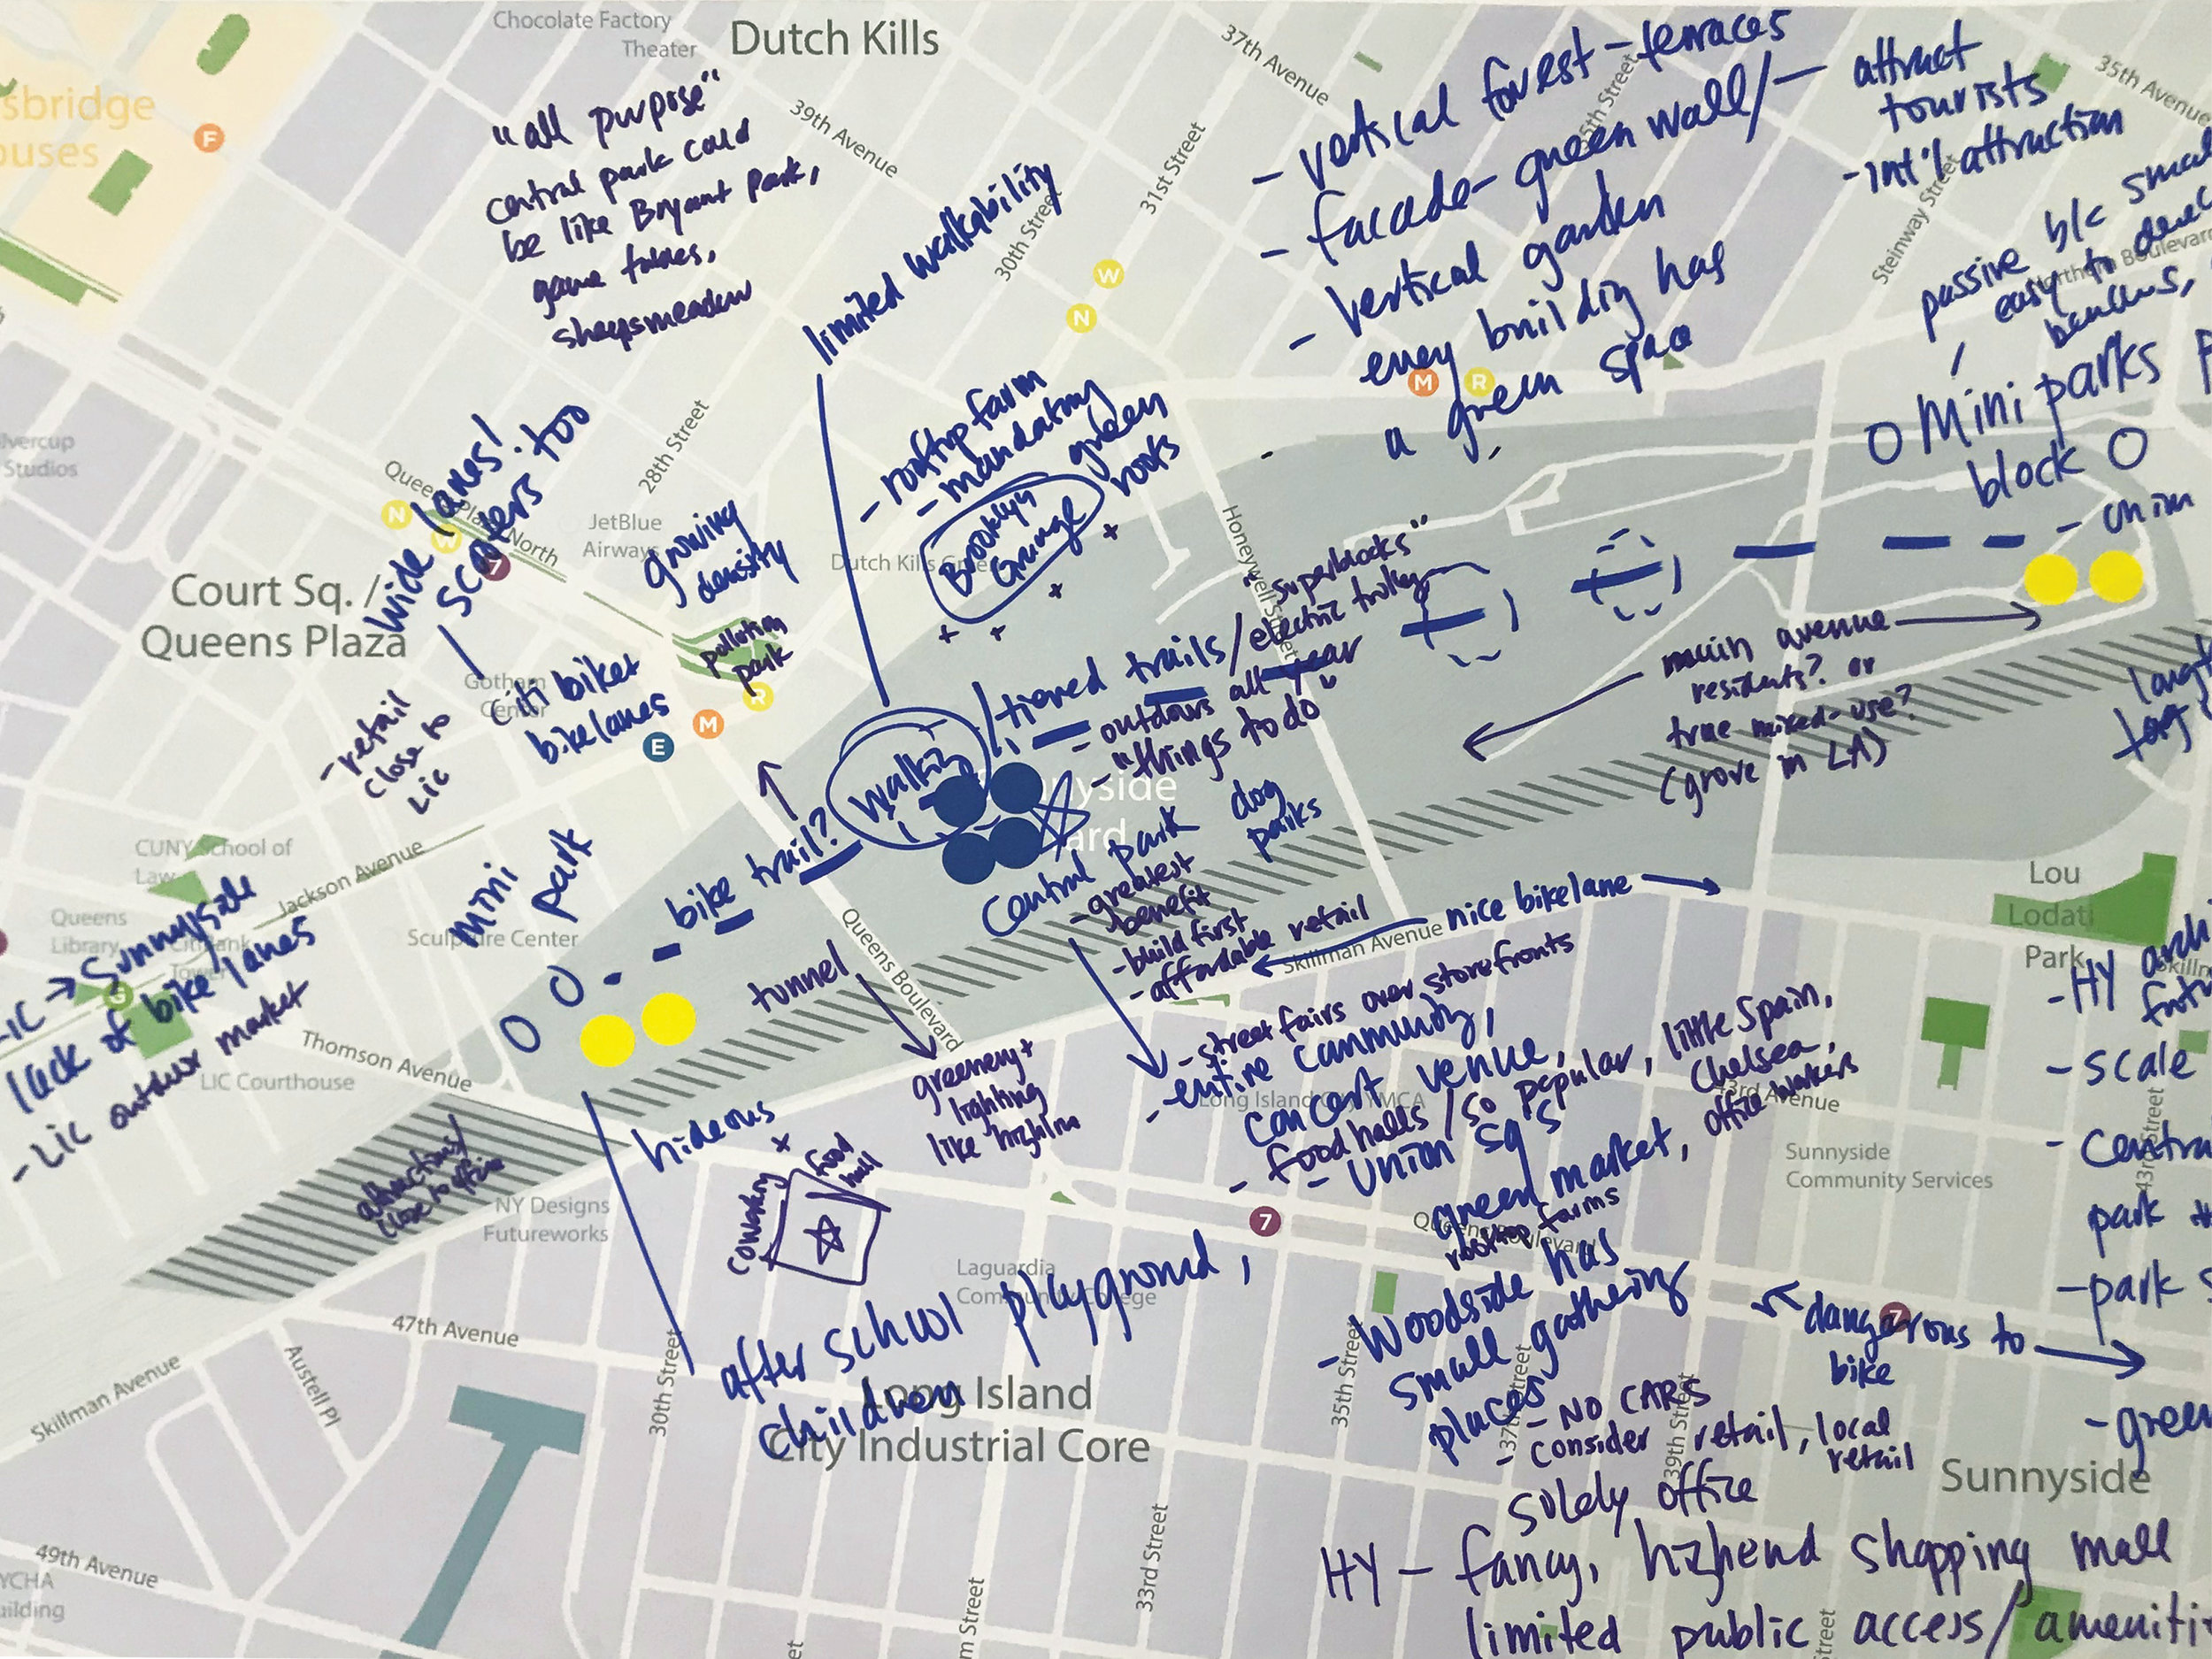 SSY_Public Workshop Findings Summary Open Space Map2.jpg